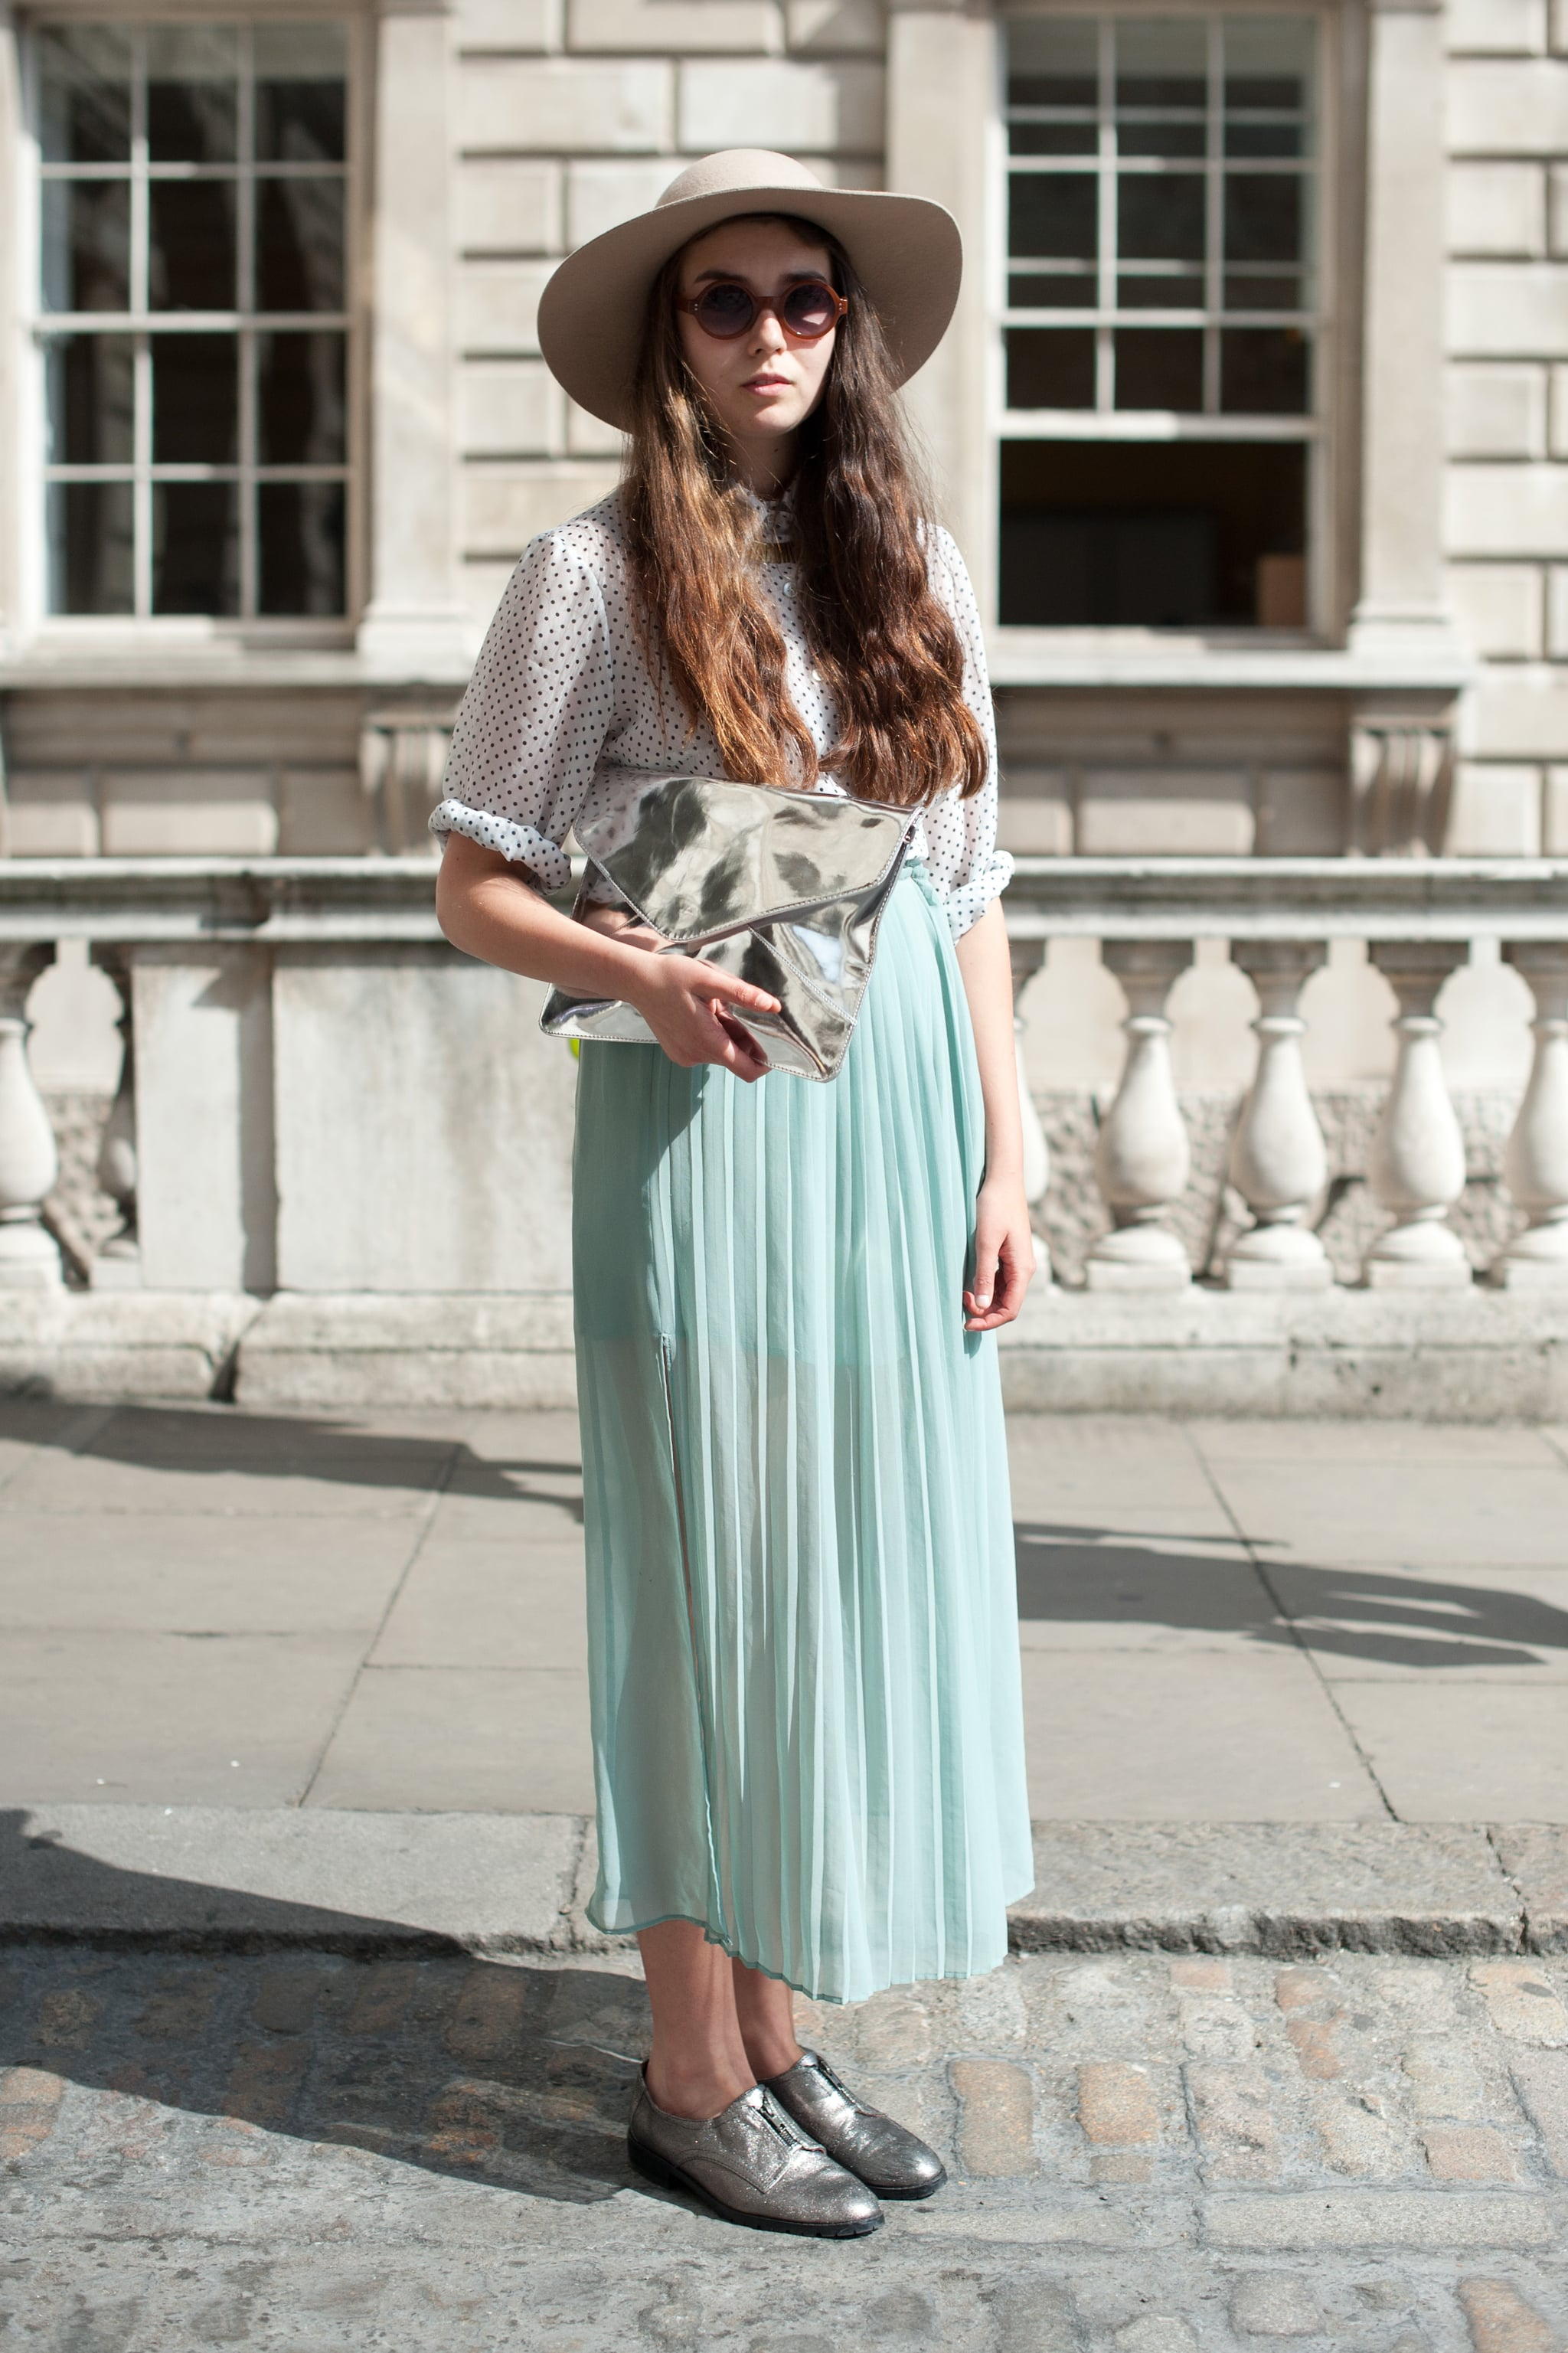 We haven't seen the last of the pretty maxi skirt silhouette — and this street styler wore hers with chic metallic silver oxford flats and a wide-brimmed hat.